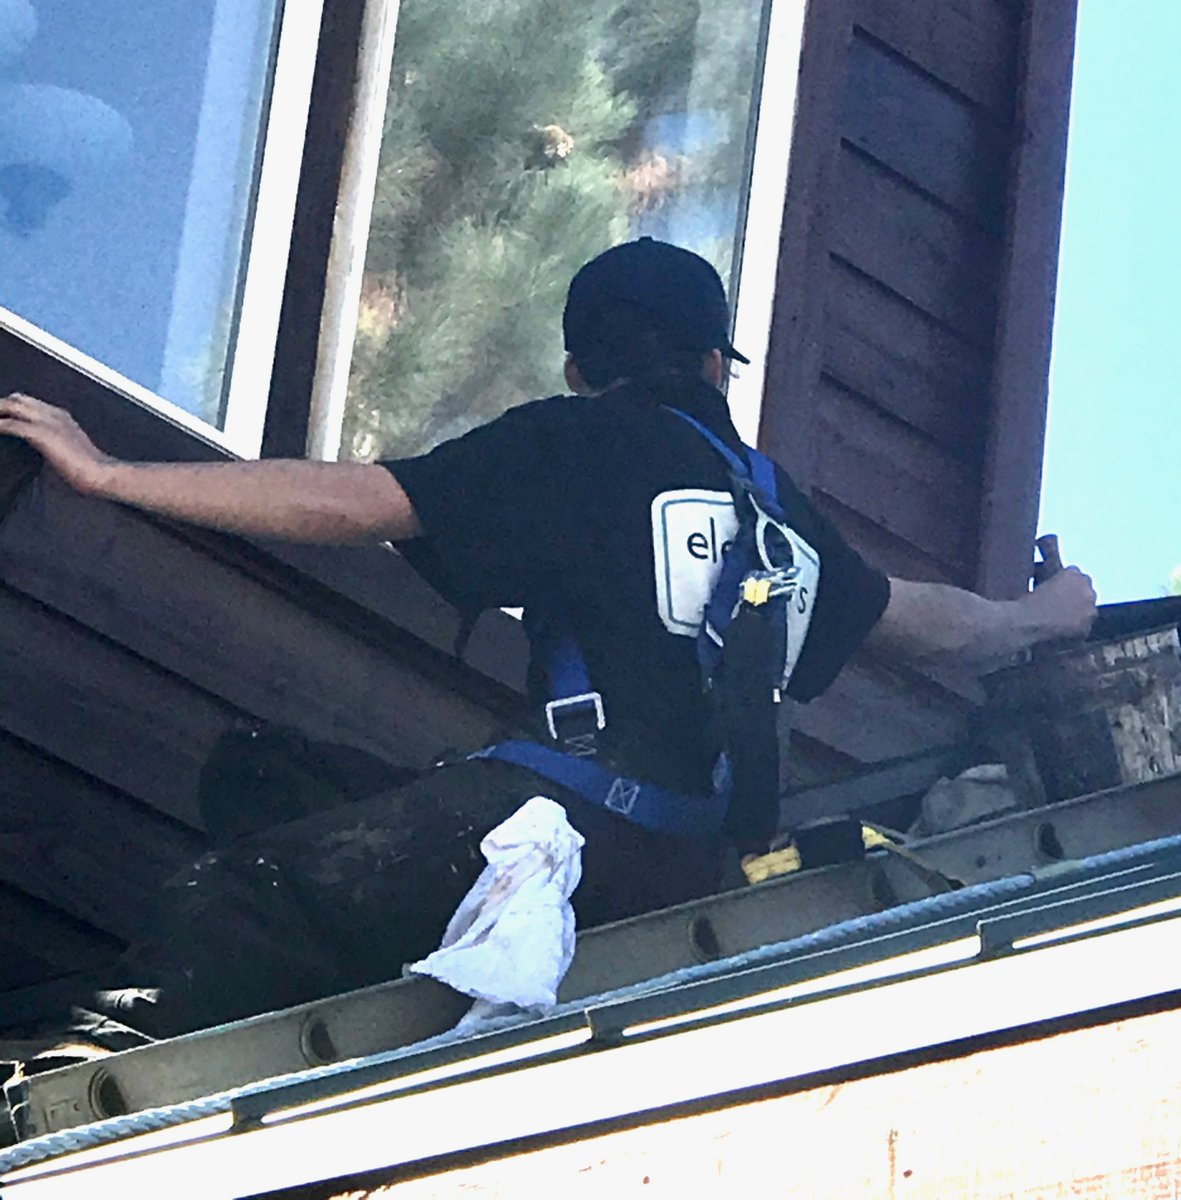 Safety first! This painter is harnessed in while tackling a tricky second story corner. #paintandstain #tahoedonner https://t.co/nRFNFpPX0H